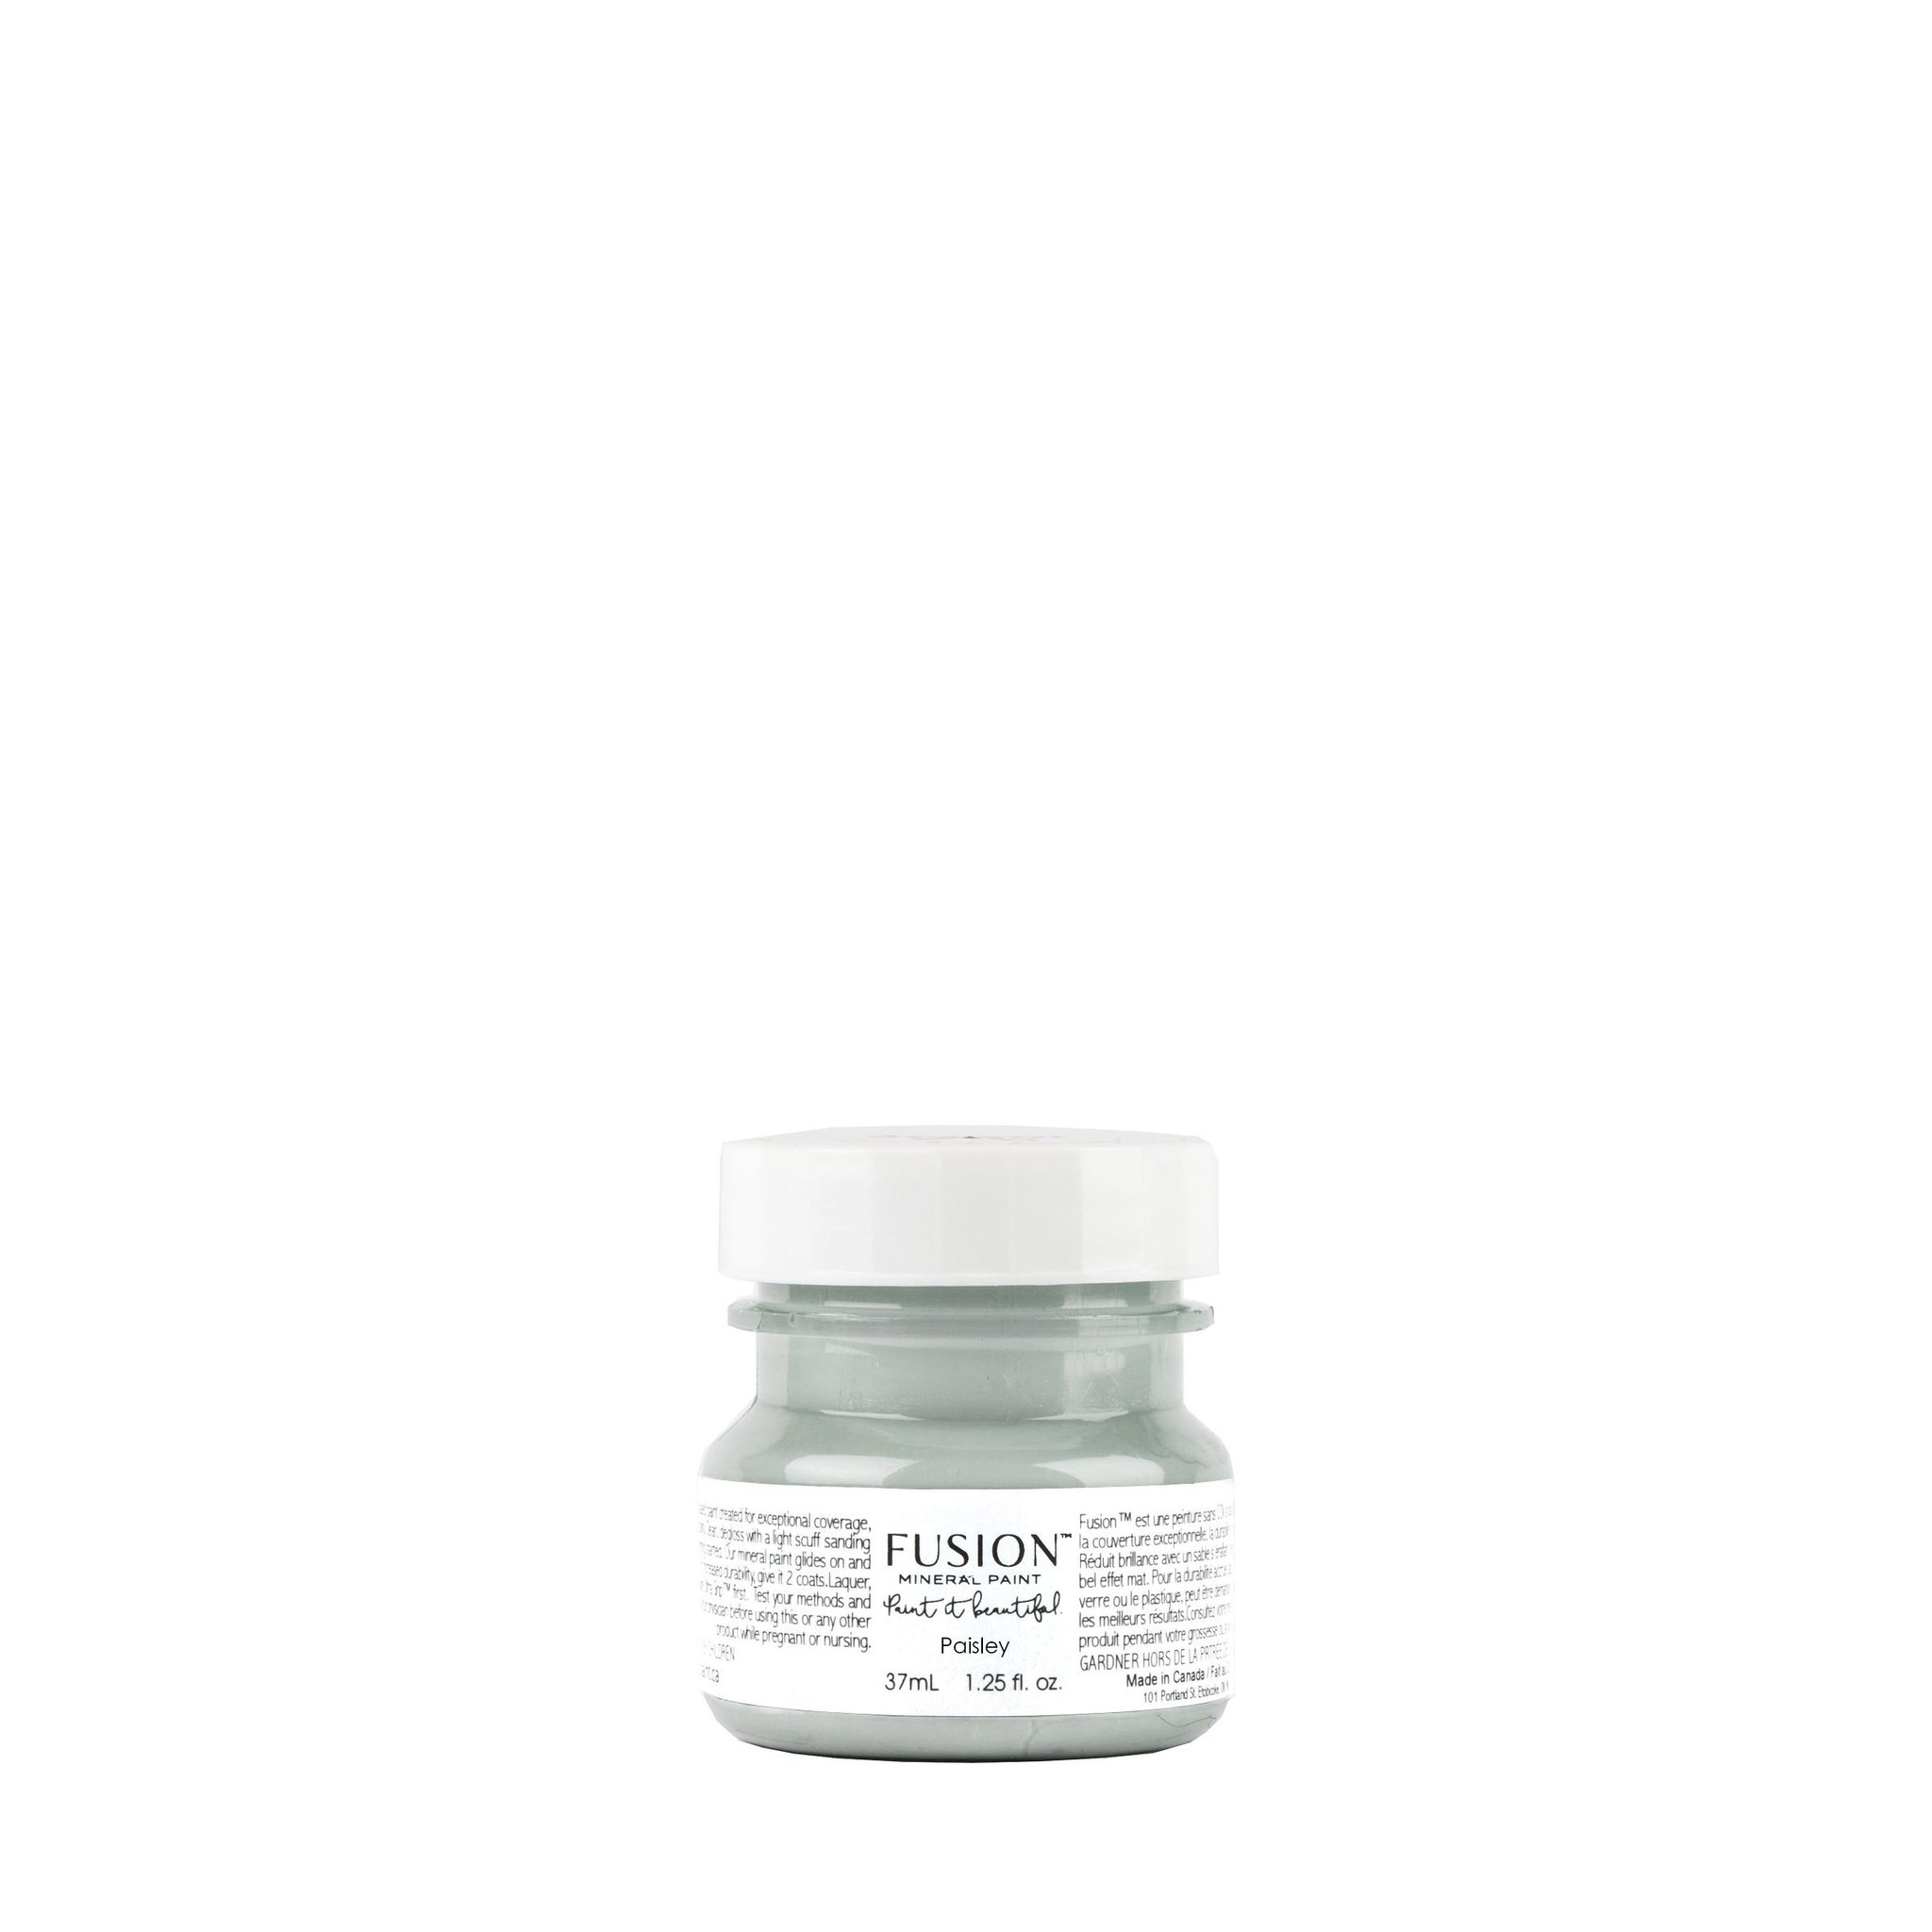 Fusion Mineral Paint Fusion - Paisley - 37ml